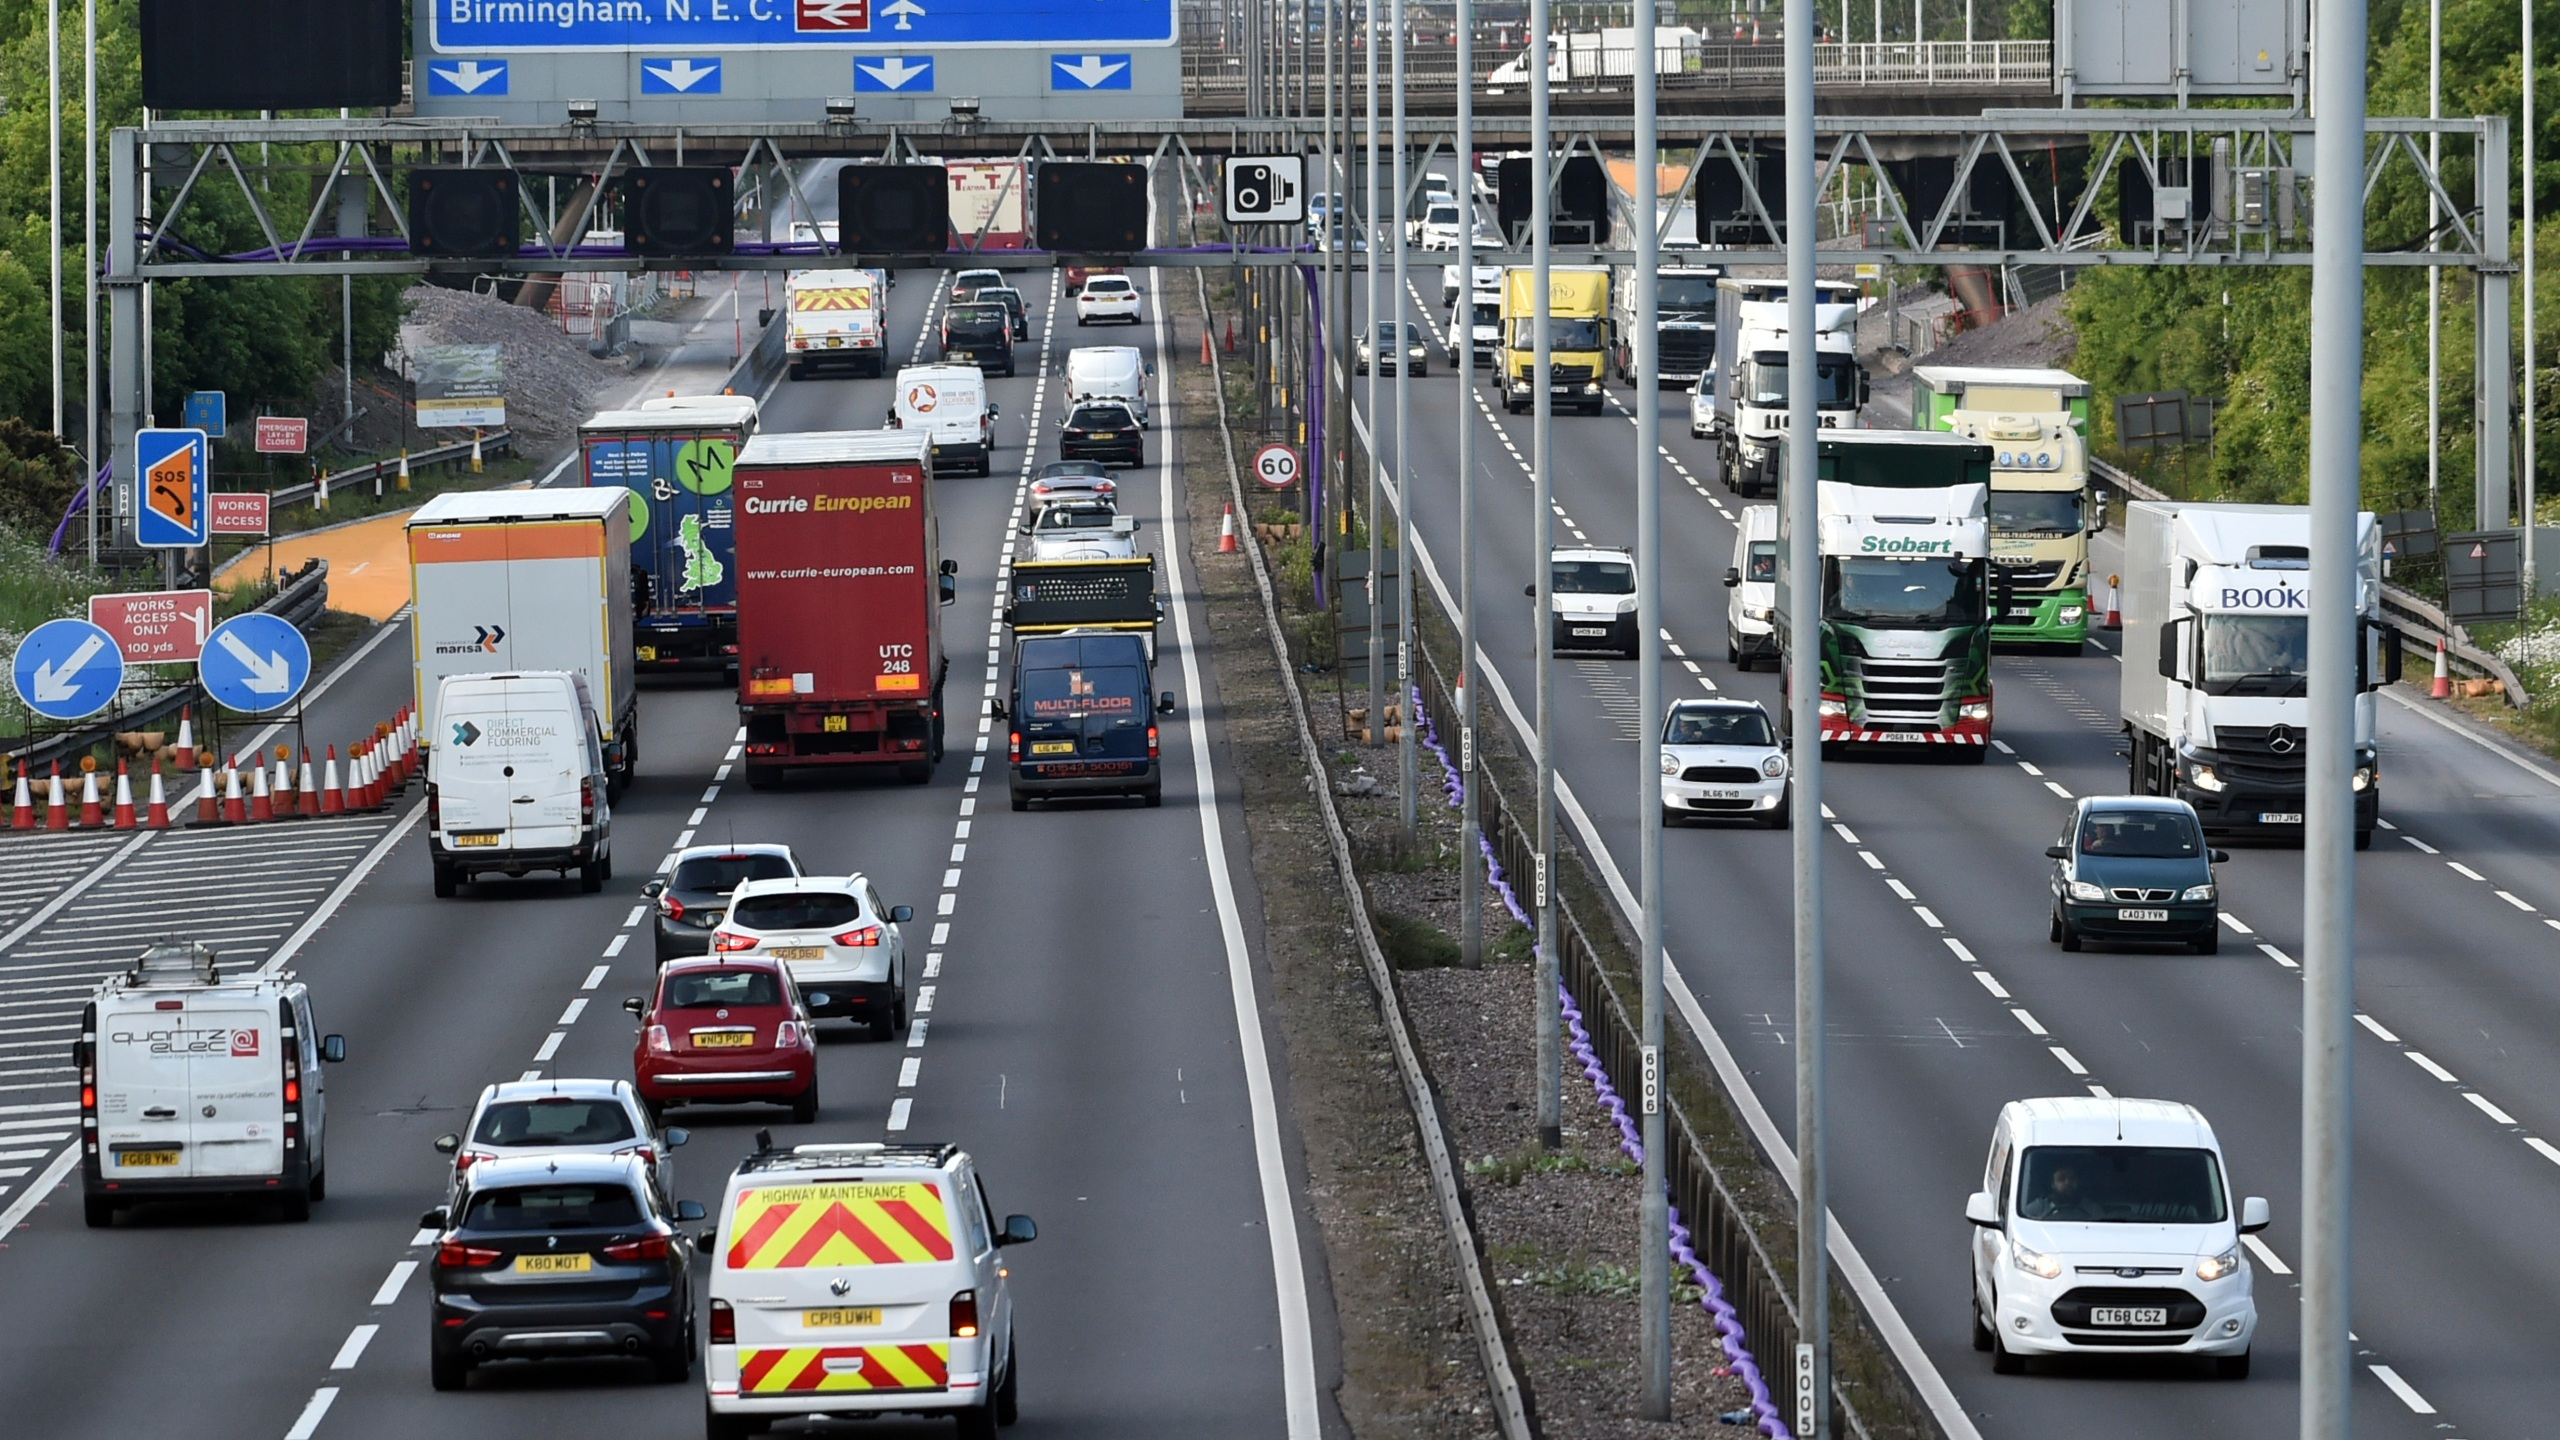 In this May 18, 2020, file photo, traffic moves along the M6 motorway near Birmingham, England. (AP Photo/Rui Vieira, File)